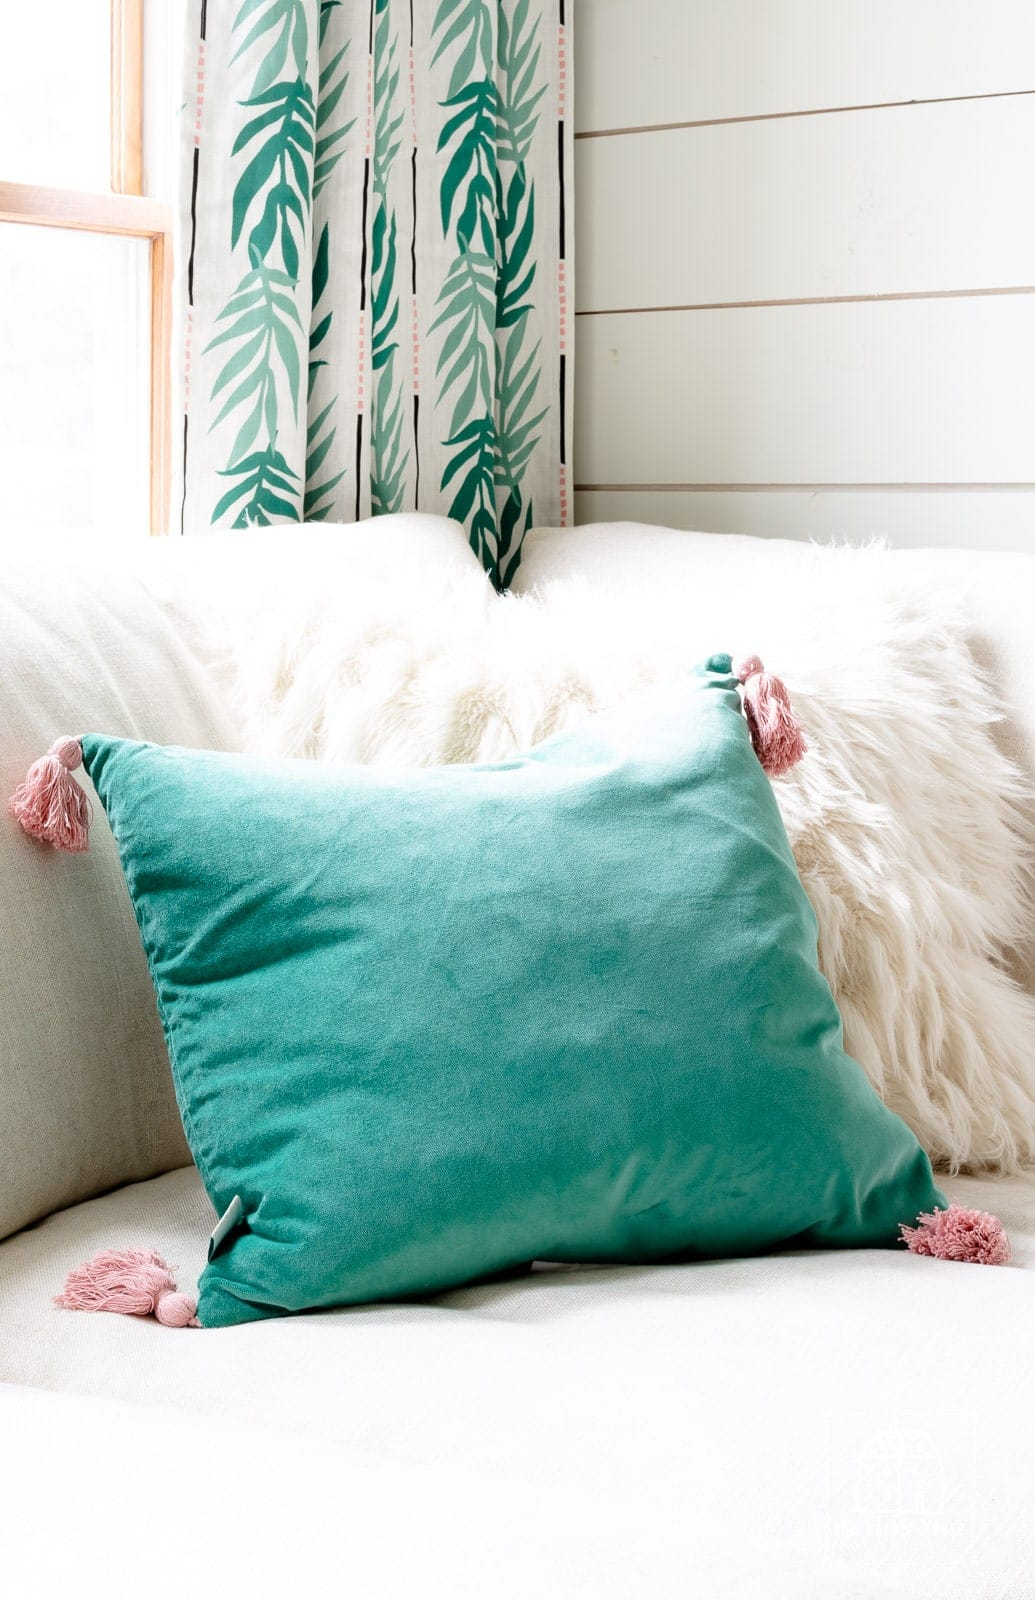 Flower Home throw pillows